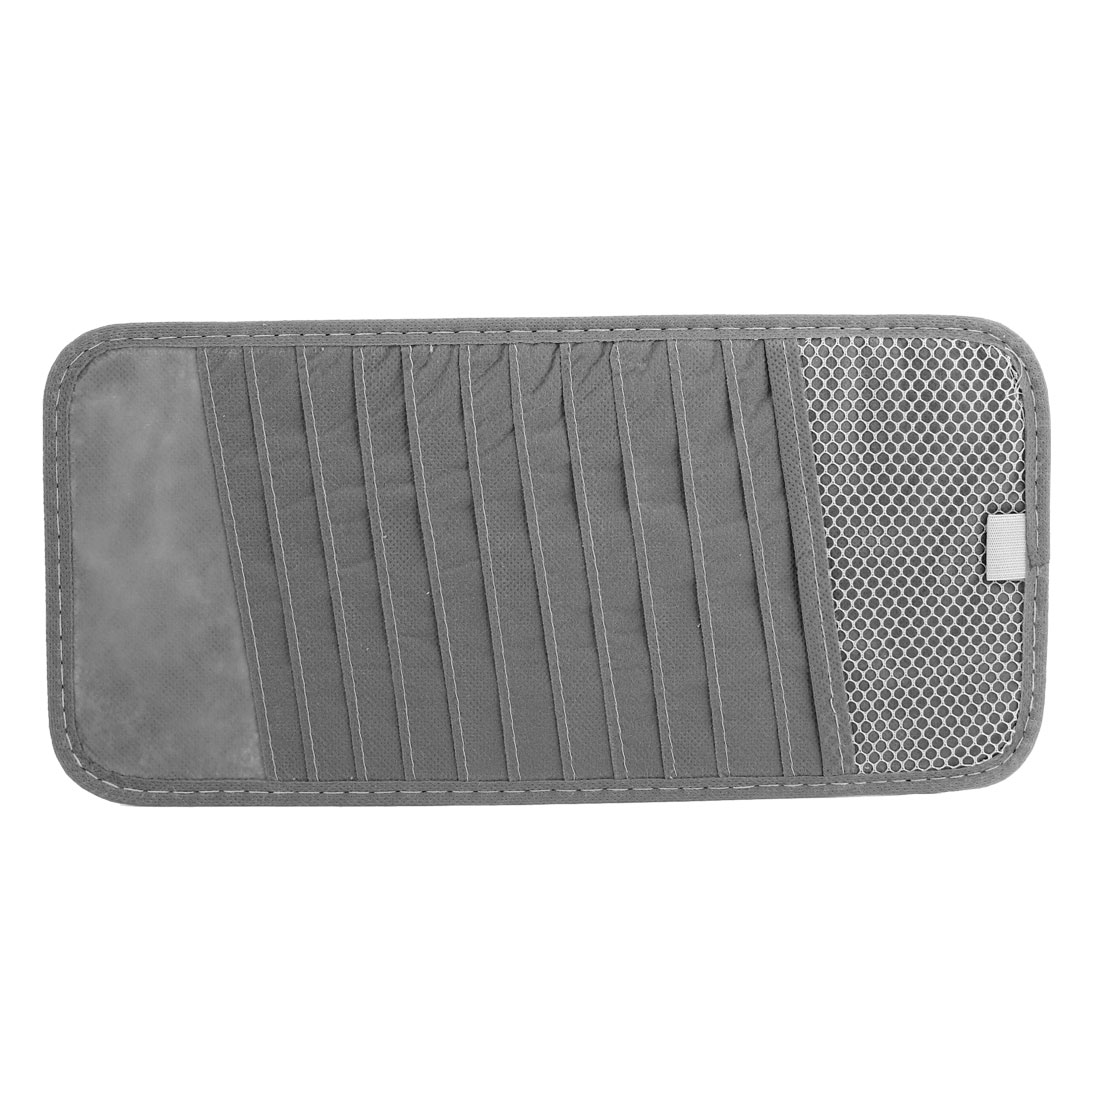 Vehicle Car Sun Visor Gray Non-Woven 12 CD DVD Storage Holder